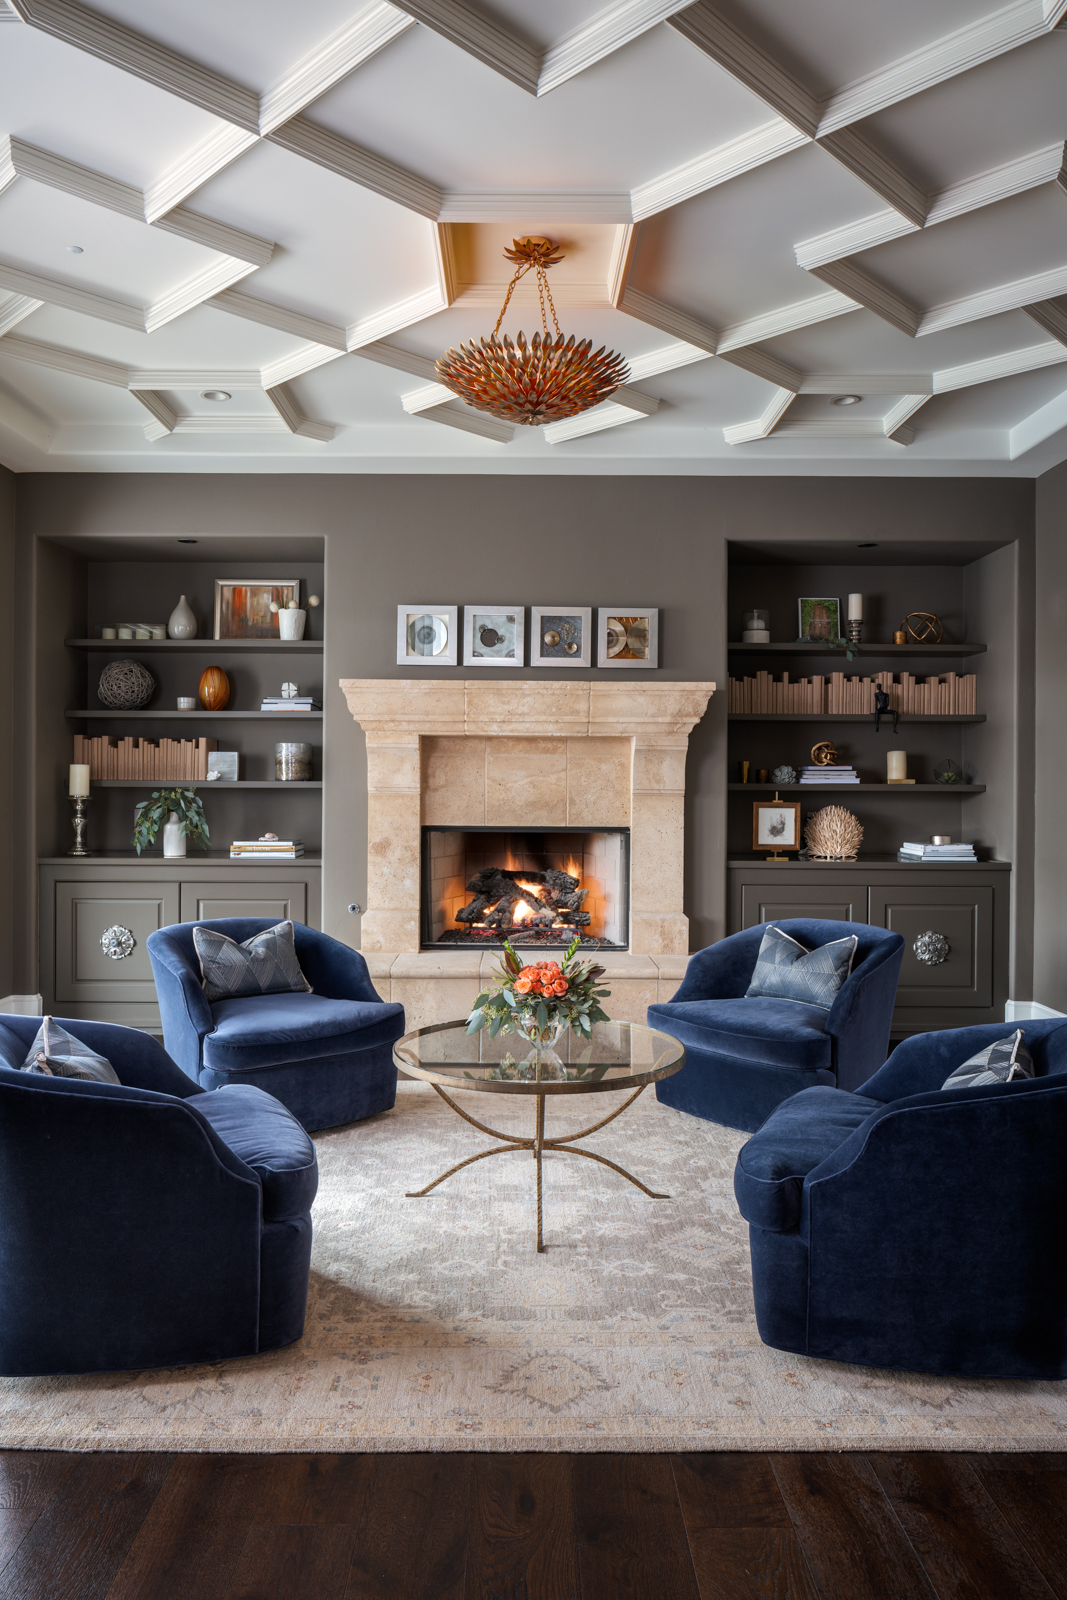 Robert Gomez - Austin Texas Editorial, Food & Beverage, Interiors Photographer | Interiors | 18